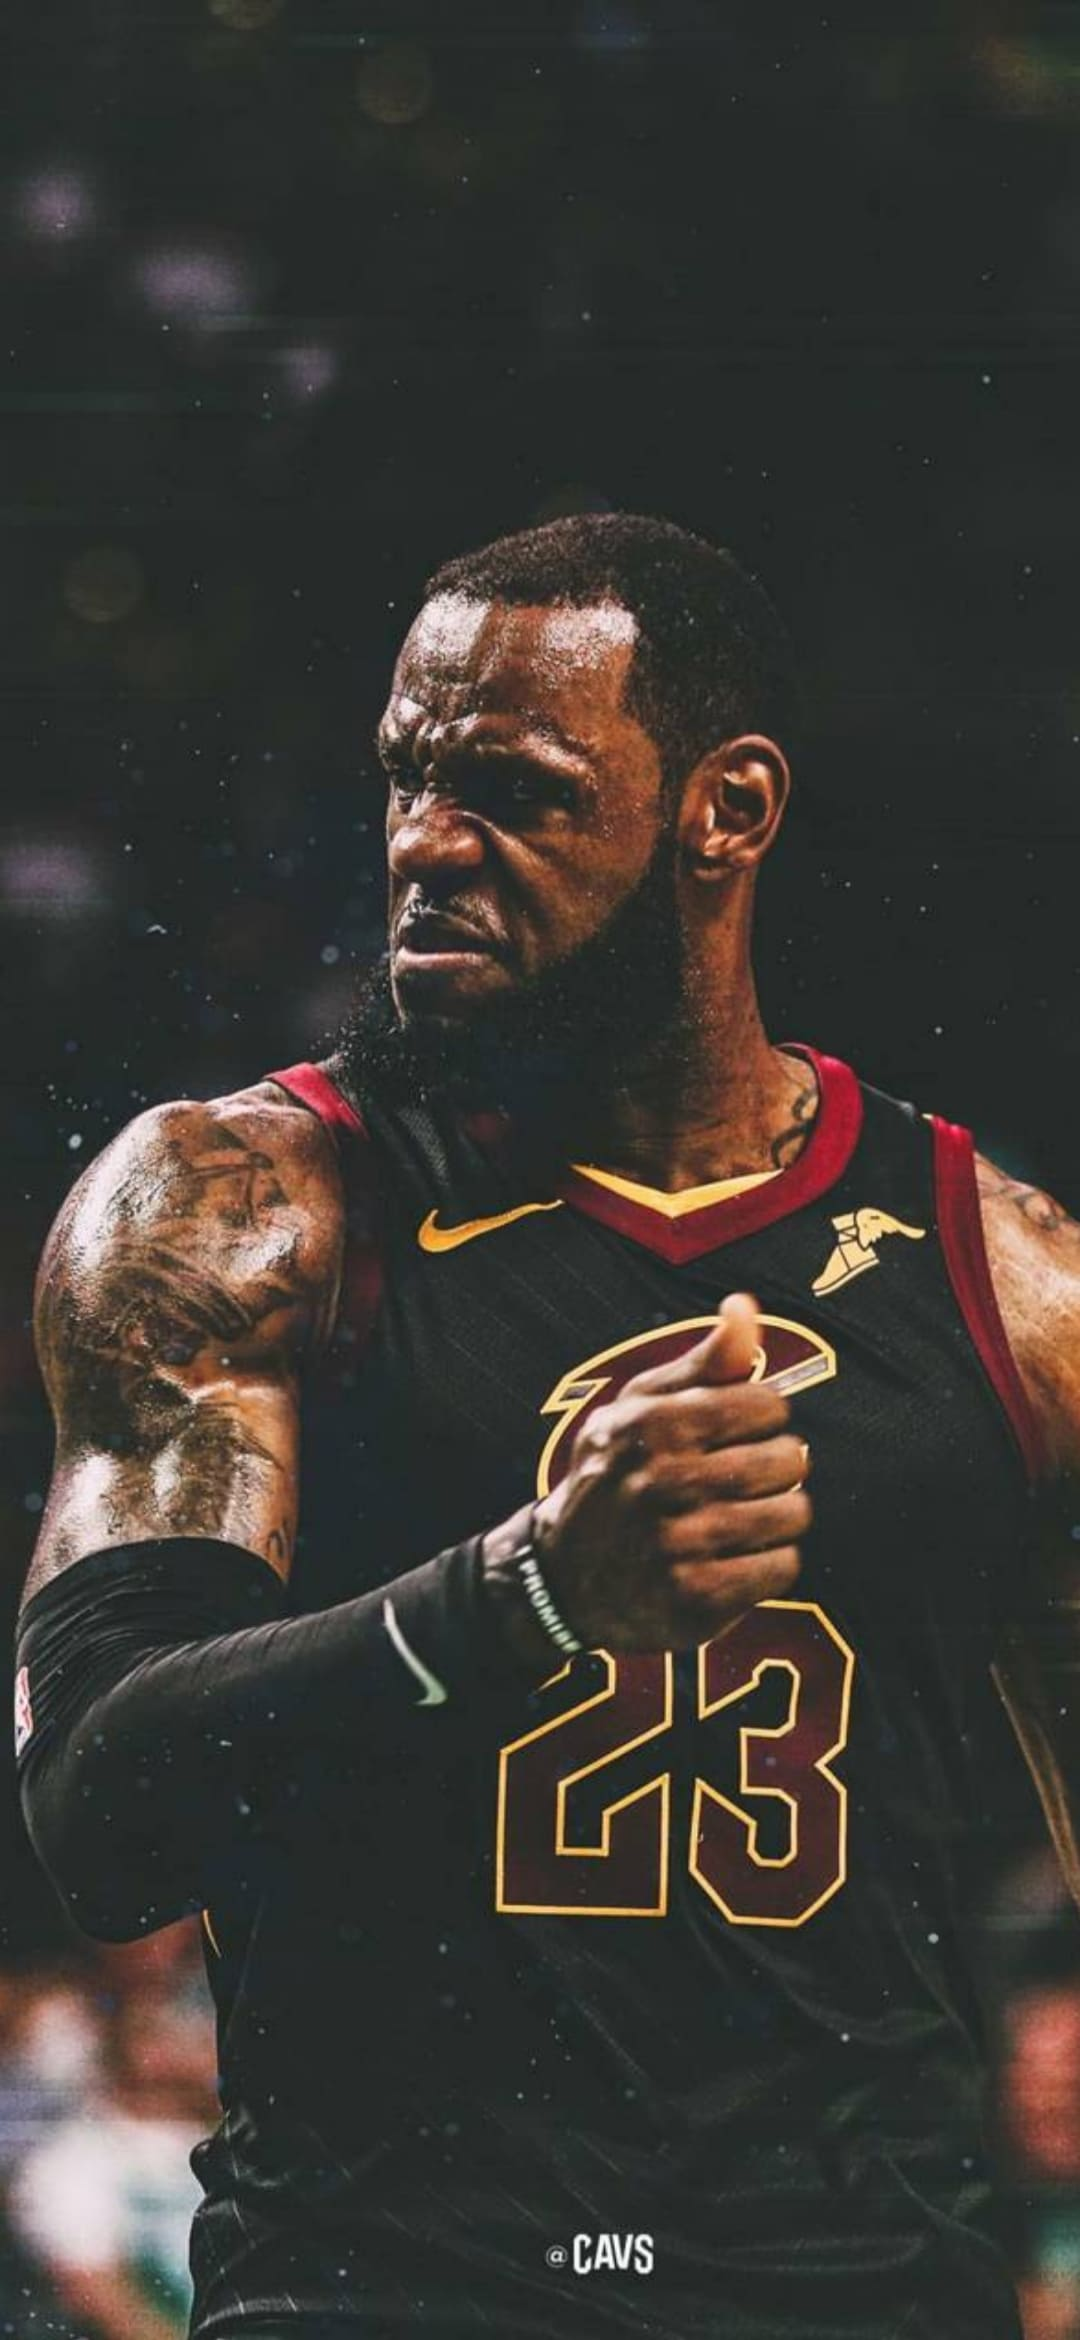 55 Áˆ Lebron James Wallpapers Download Free Hd Images Of Nba